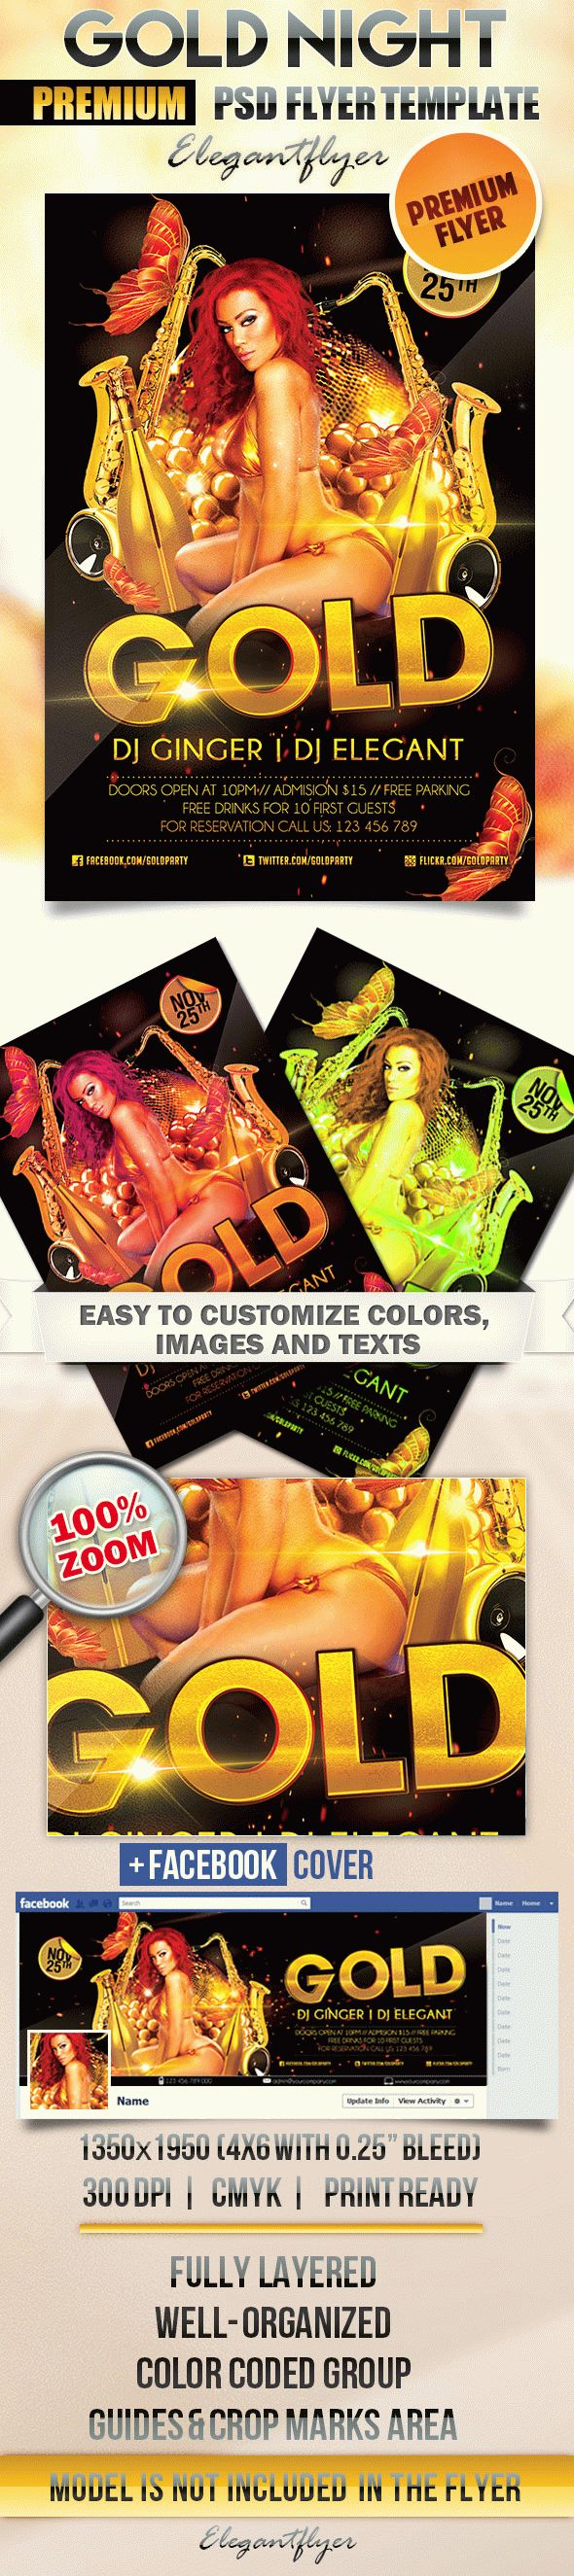 Gold Night Club Flyer in PSD